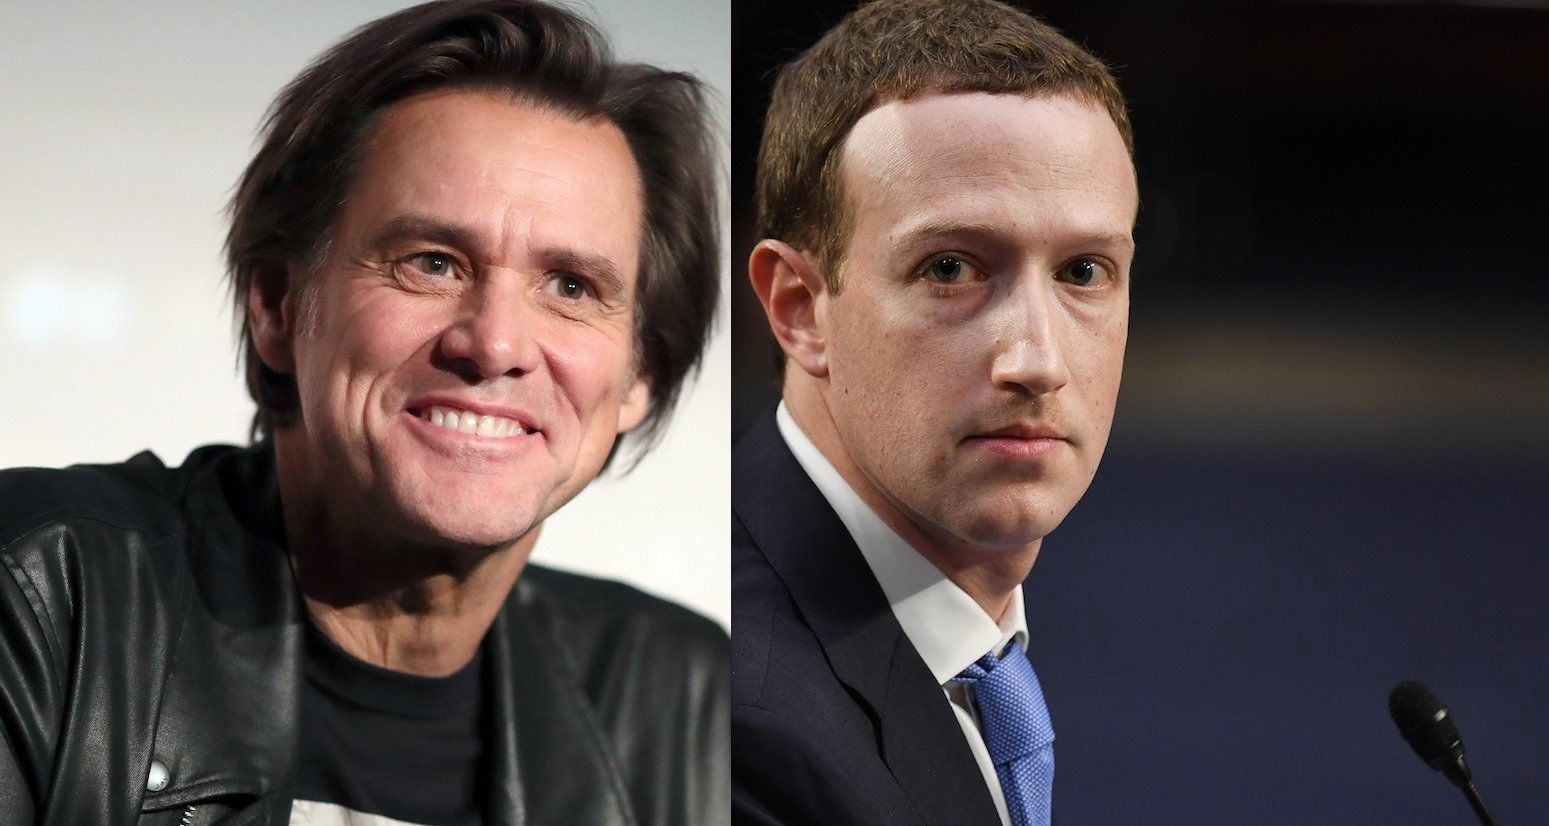 Jim Carrey Mark Zuckerberg